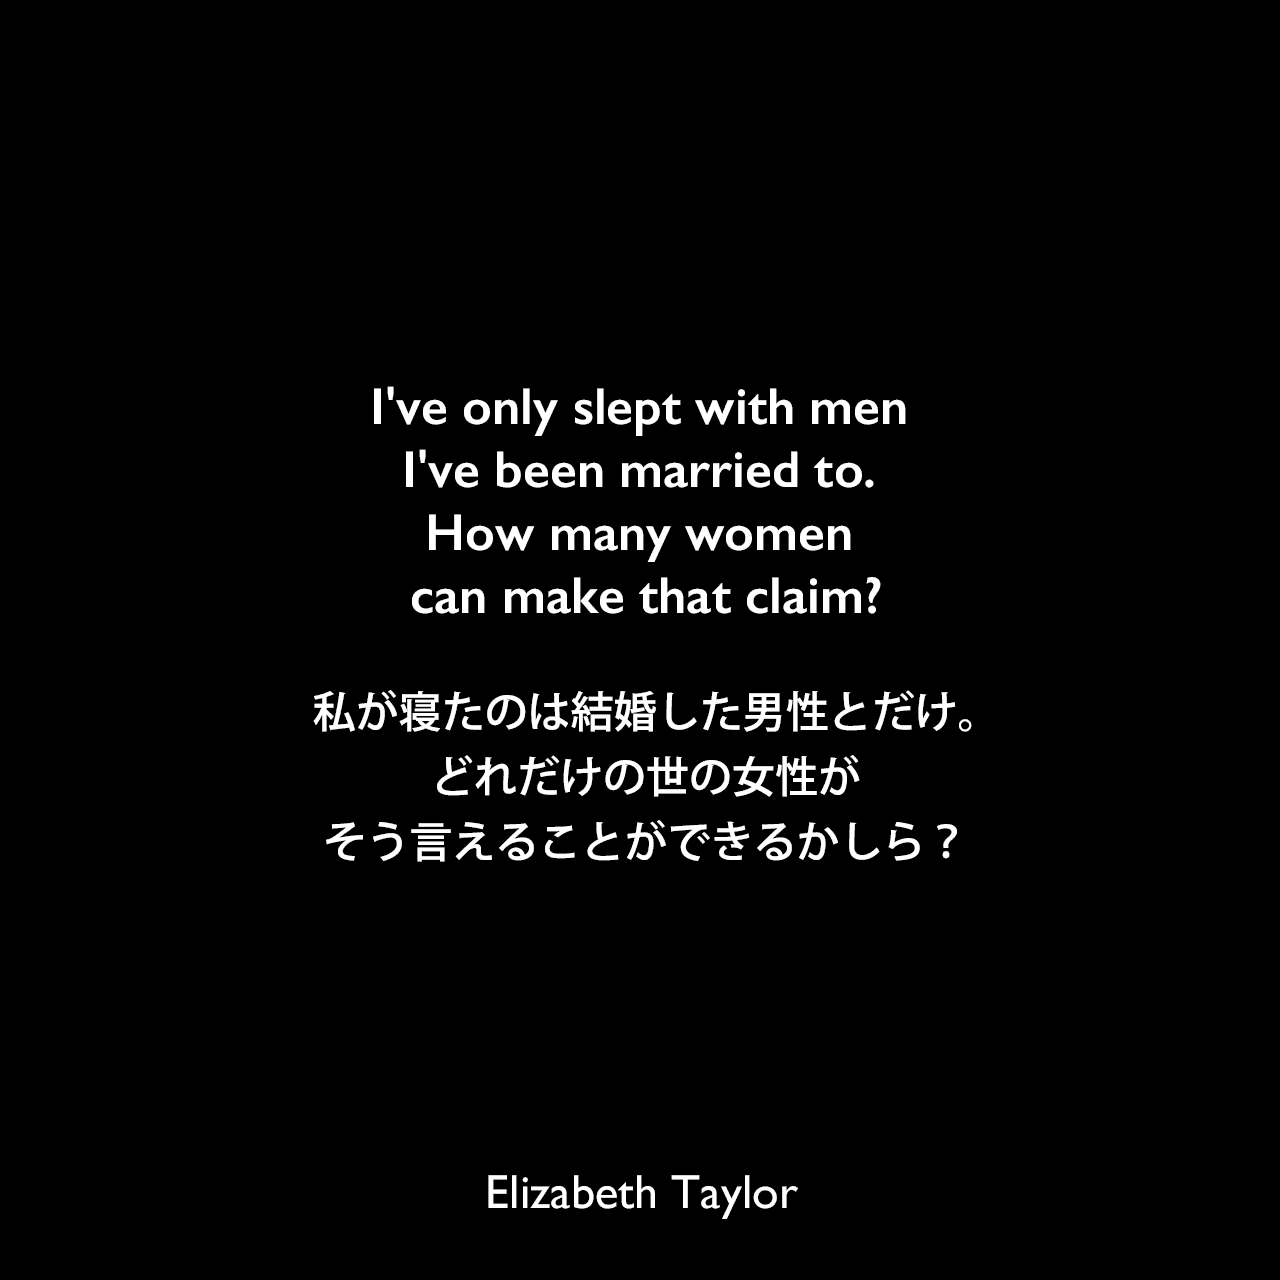 I've only slept with men I've been married to. How many women can make that claim?私が寝たのは結婚した男性とだけ。どれだけの世の女性がそう言えることができるかしら?Elizabeth Taylor